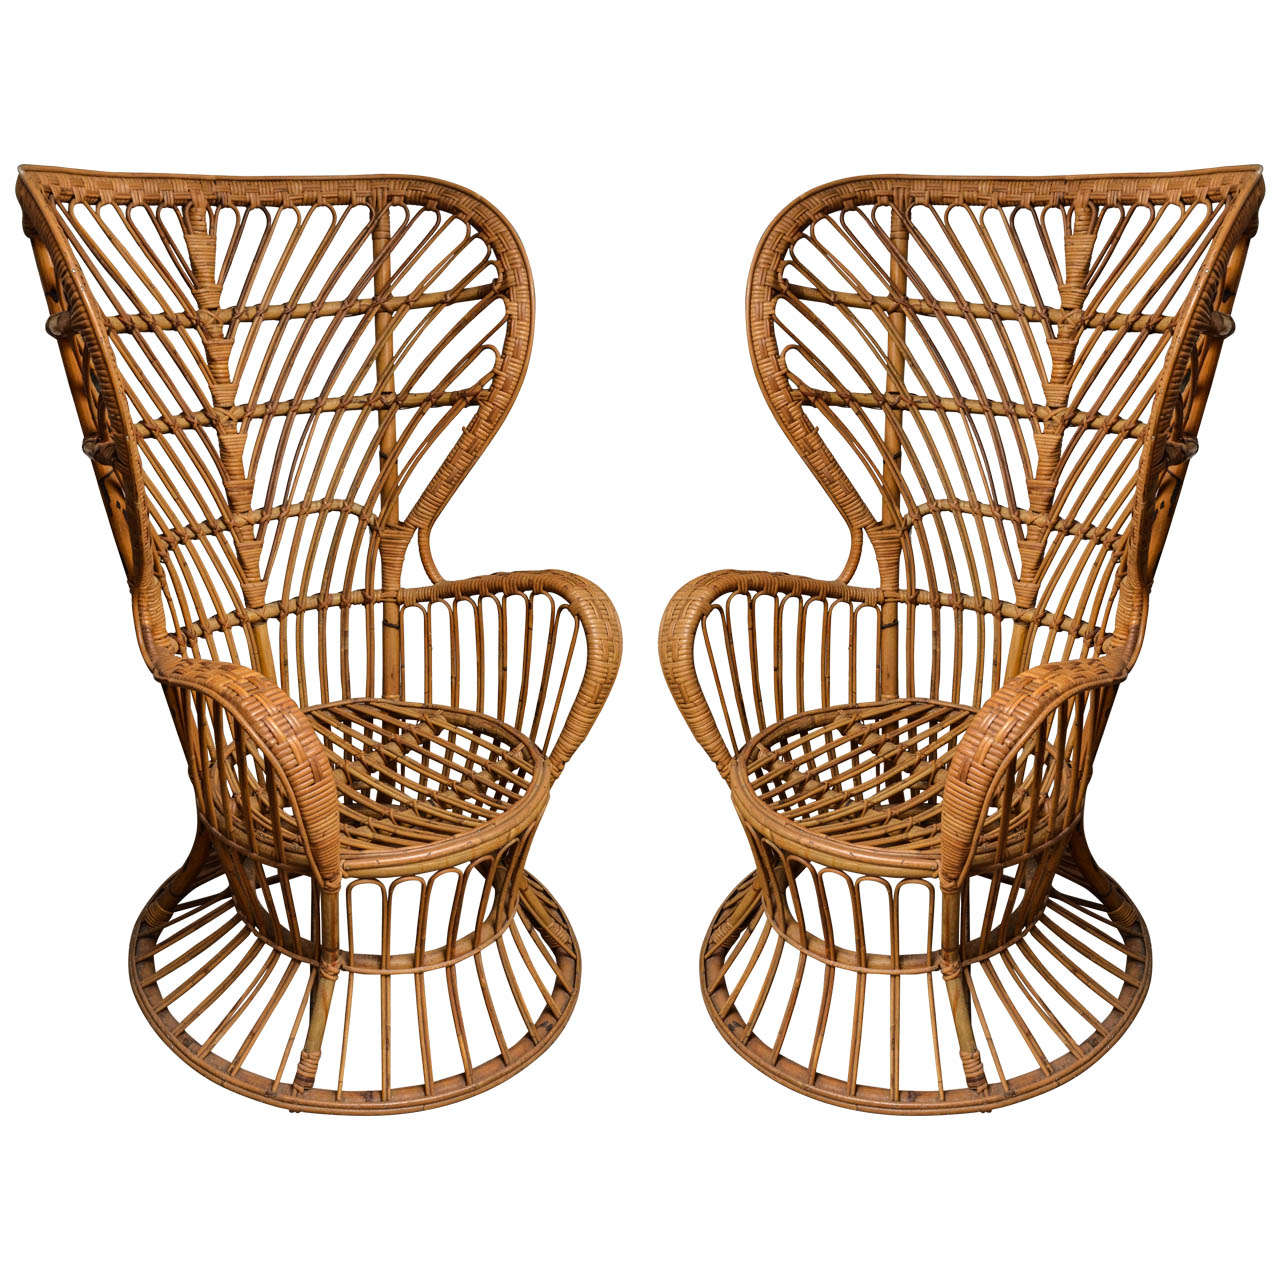 cane chairs for sale swing chair no stand pair of by lio carminati at 1stdibs